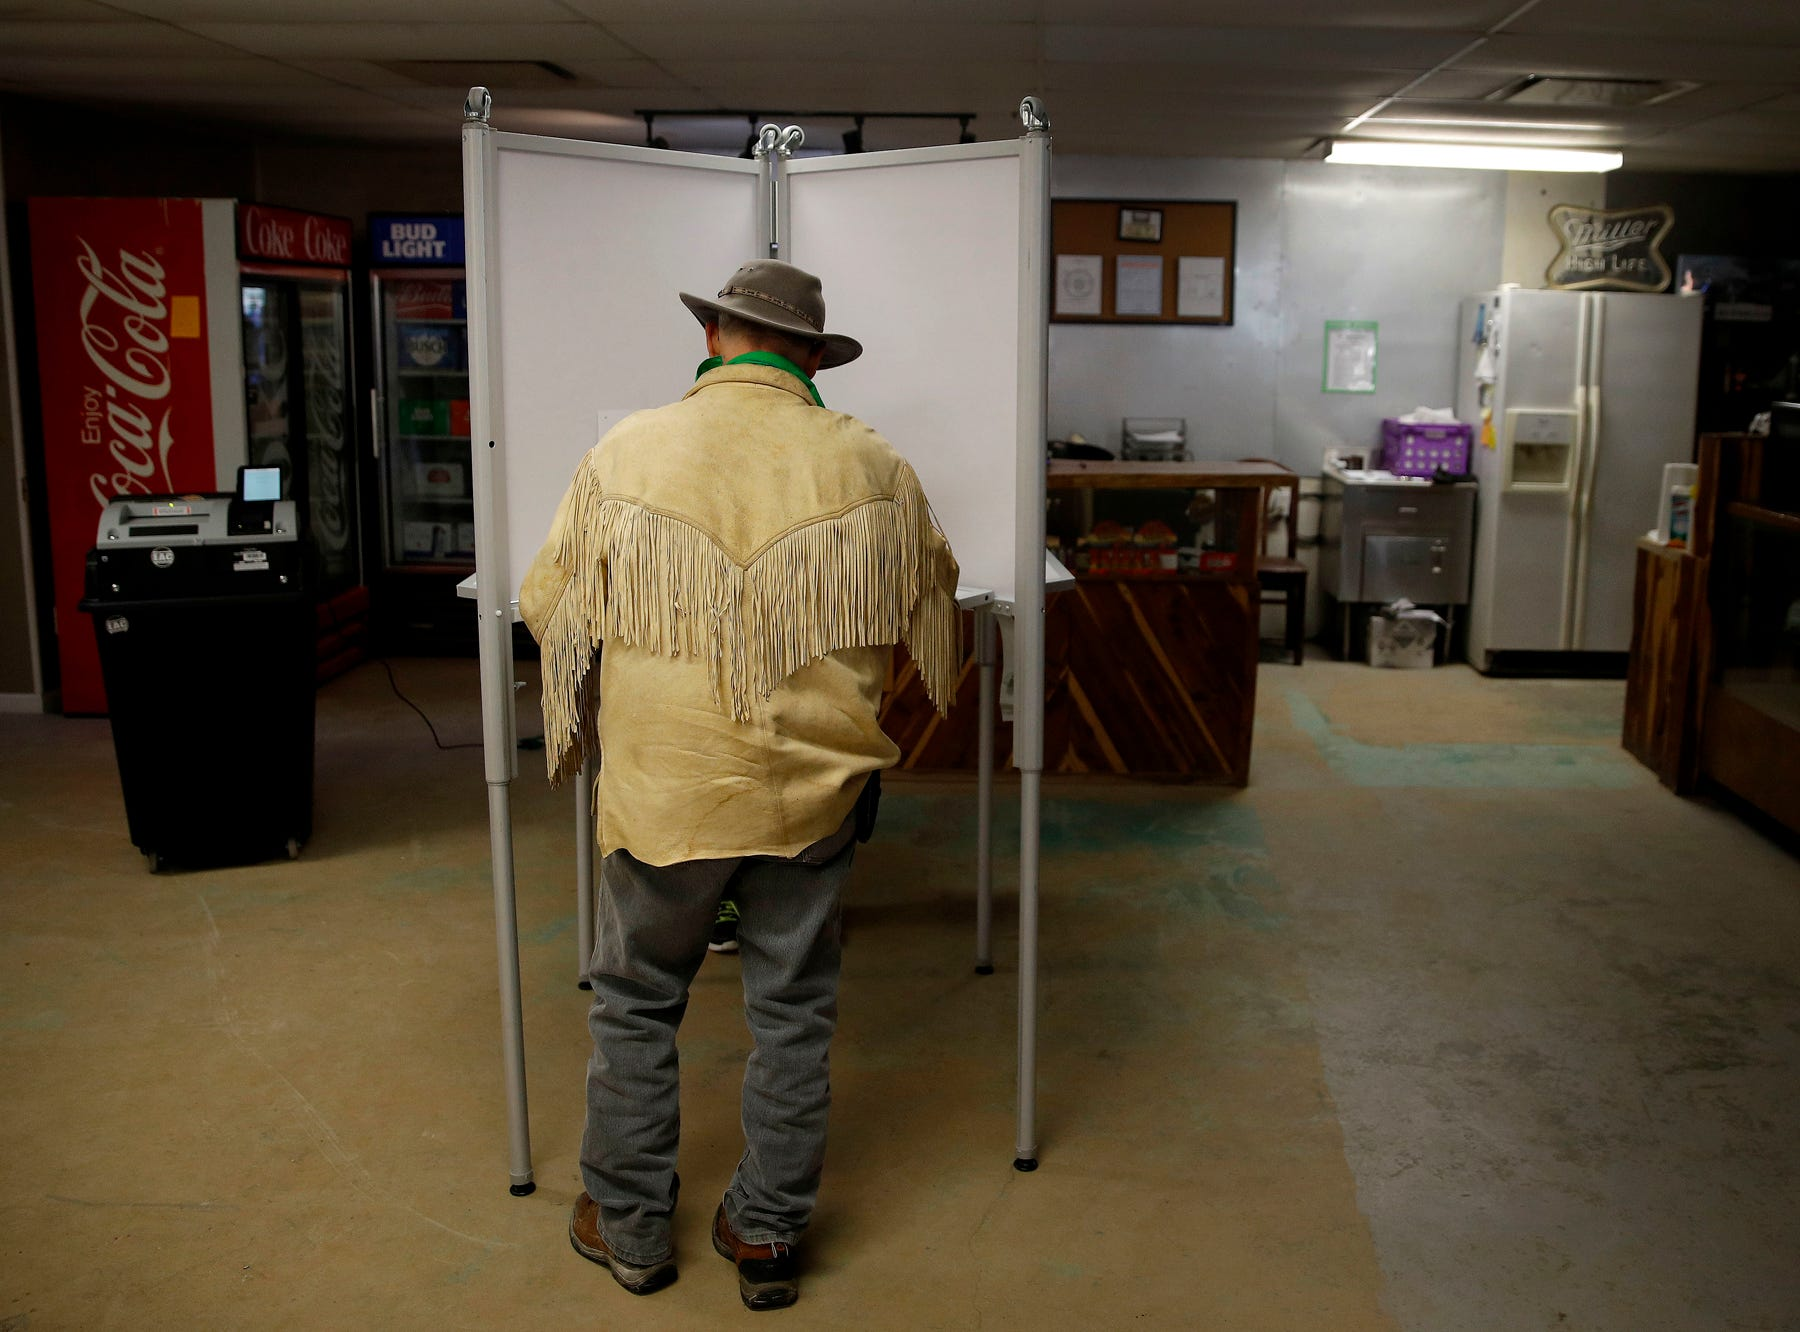 Stuart Wood, from Stockton, Mo., votes at Caplinger Woods RV & Campgrounds, Tuesday, Nov. 6, 2018, in Stockton, Mo. (AP Photo/Charlie Riedel)